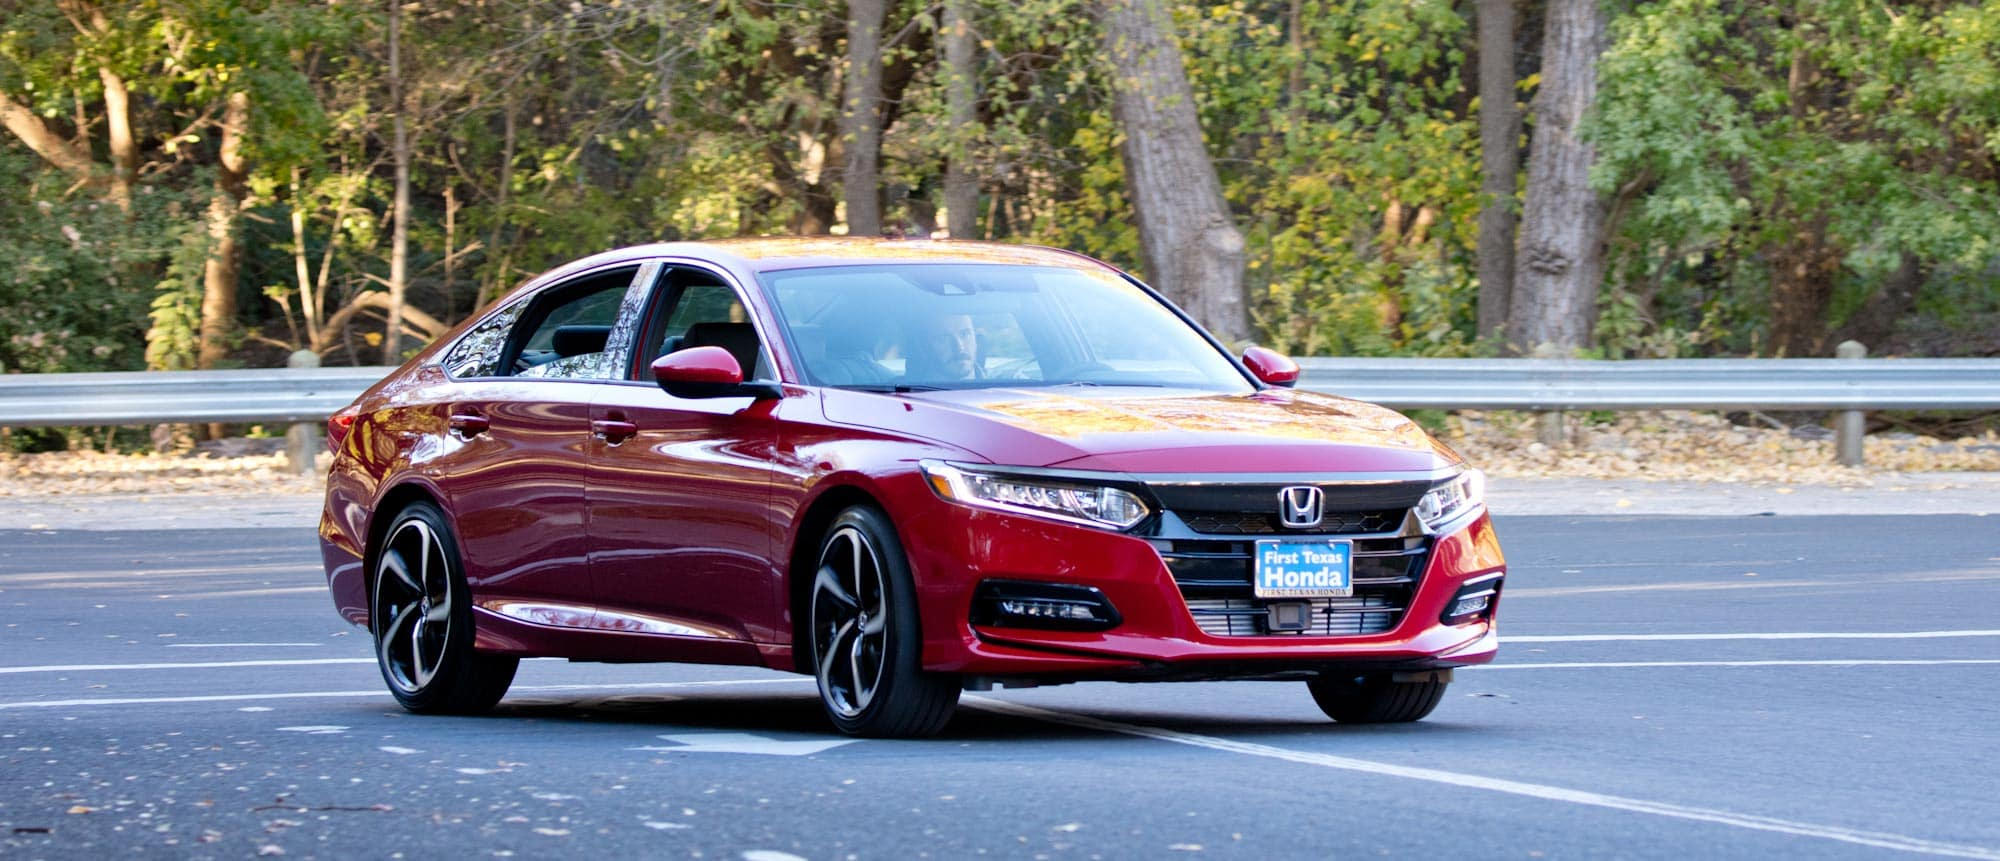 fremont honda hayward htm for bay in event the area accord ca sale alameda oakland sales accords